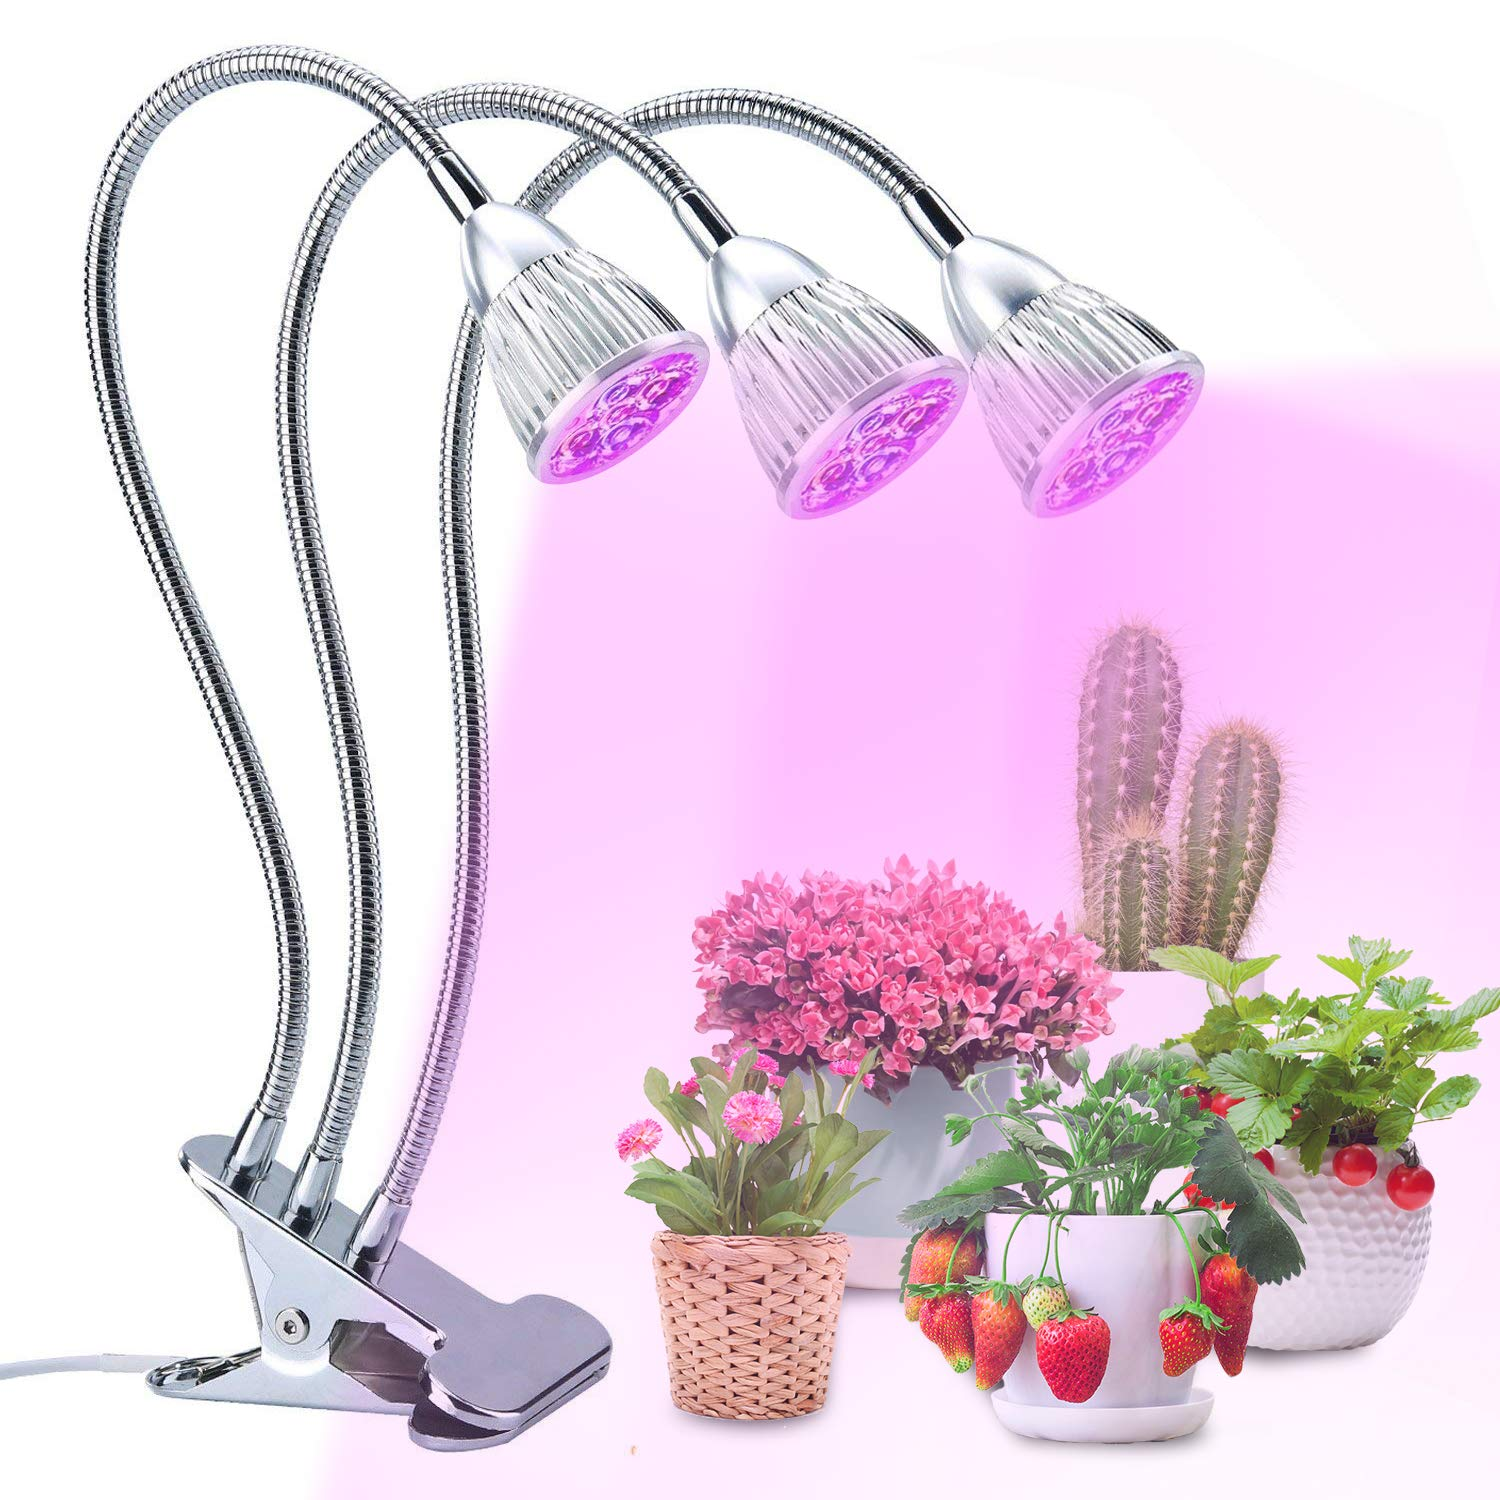 Led Grow Light, Lovebay Three Head Grow Lamp Clip on Plant Light with Flexible 360 Degree Gooseneck and 3 Work Modes for Indoor Plants Hydroponics Greenhouse Organic Office Home